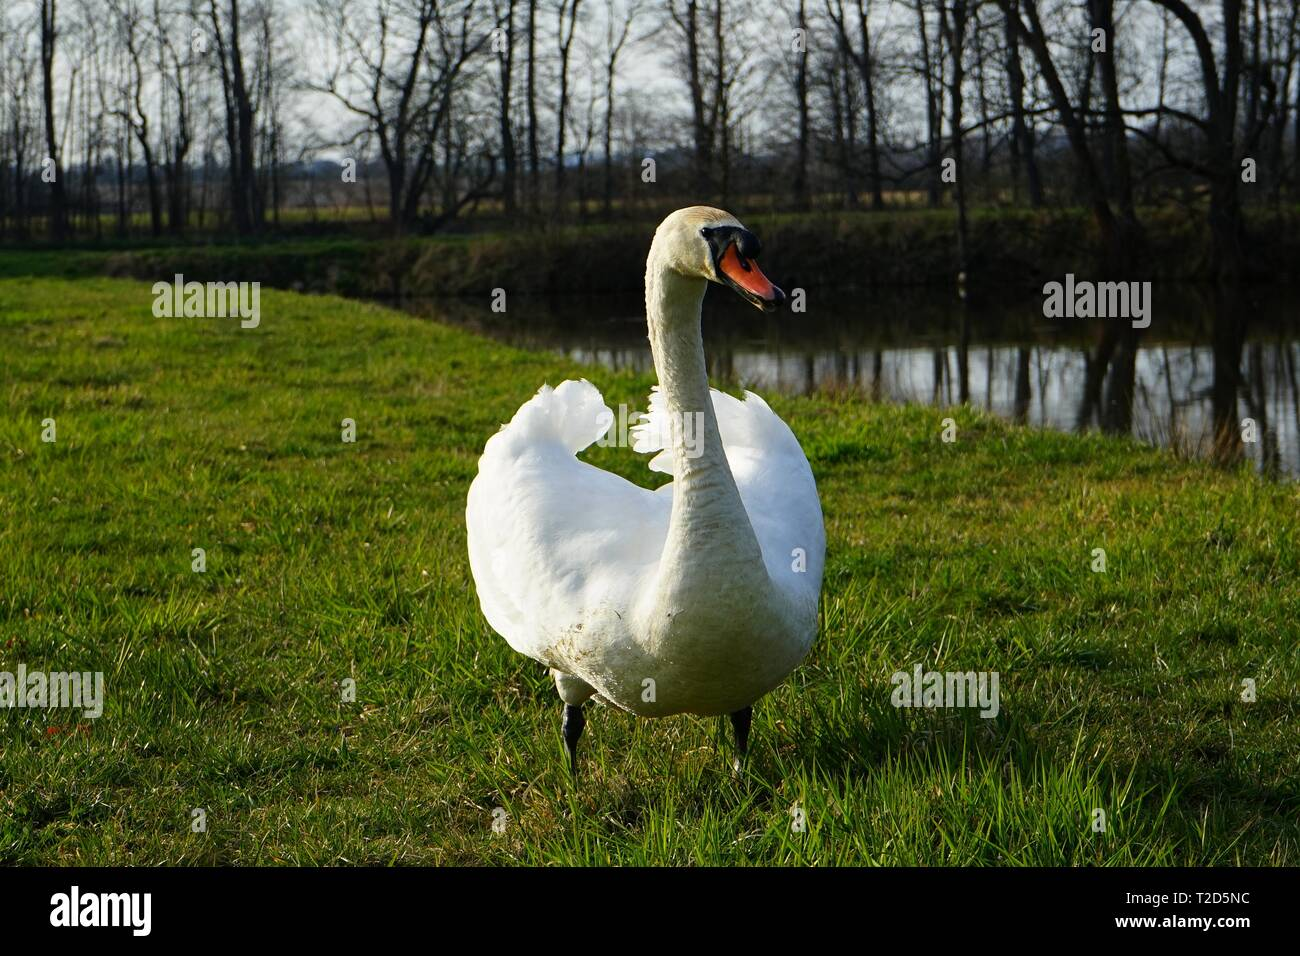 Cautious swan posing for camera. - Stock Image